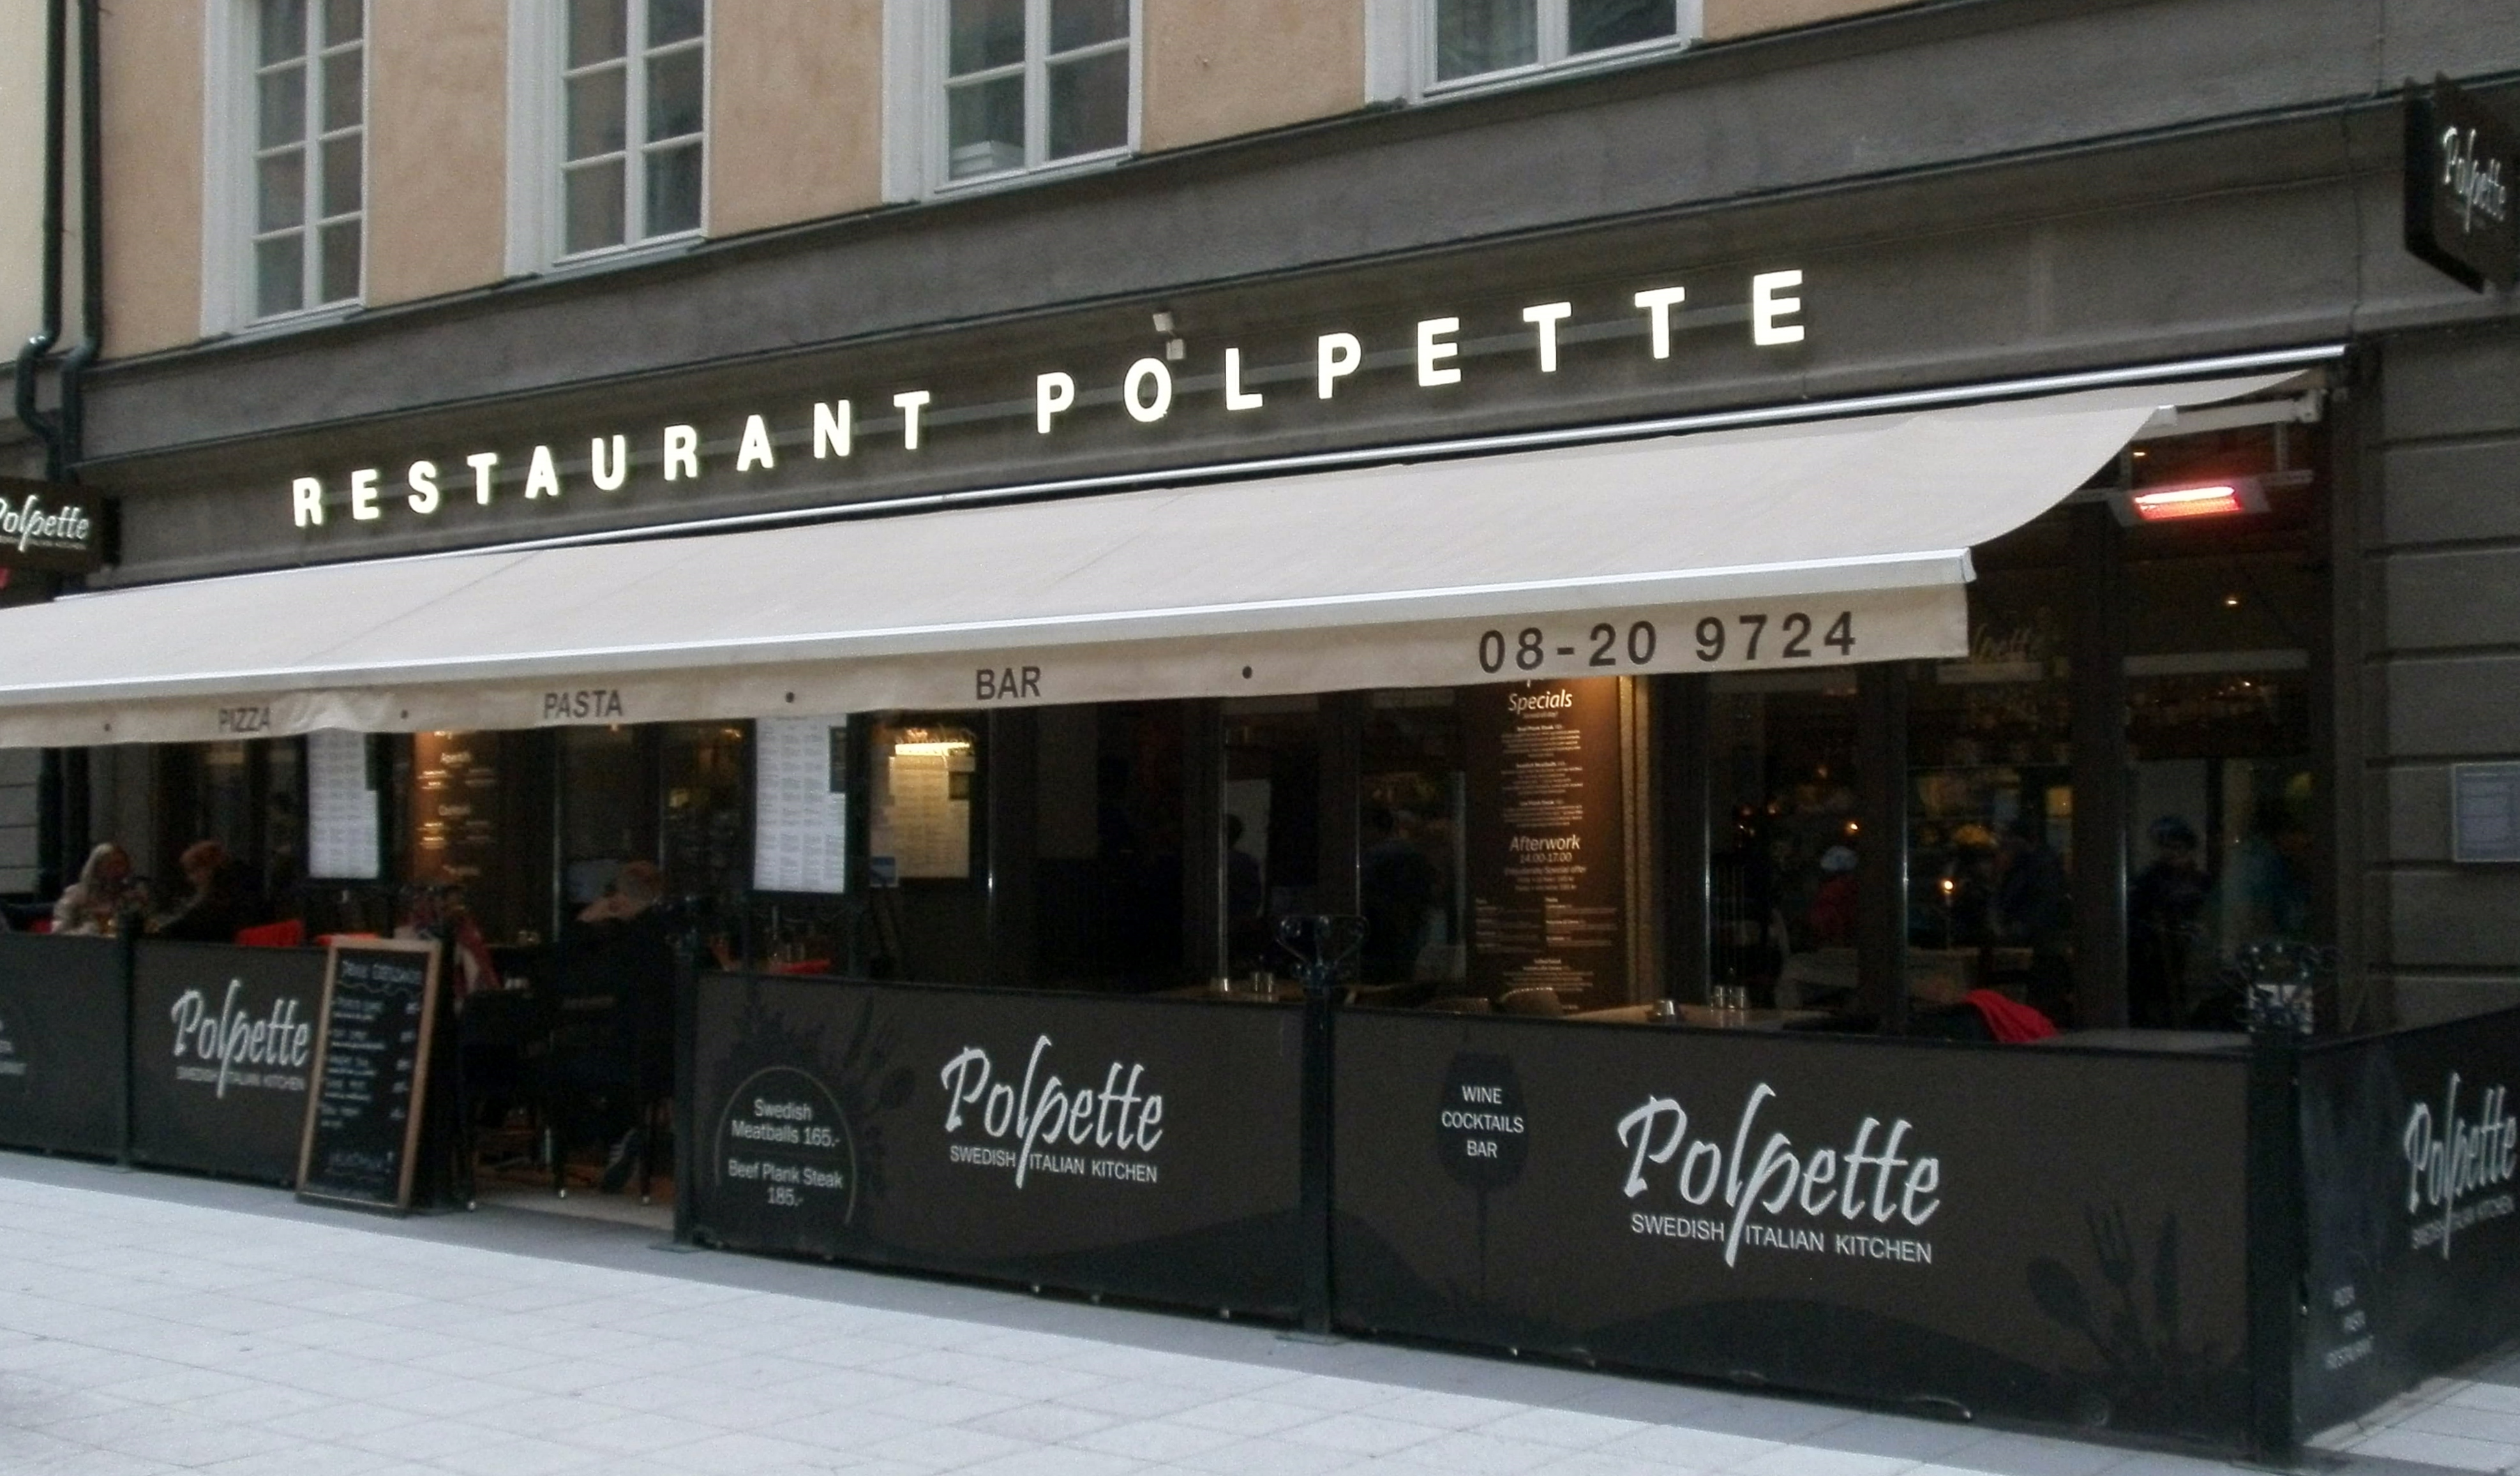 Situated On A Busy Pedestrianised Ping Street This Restaurant Offers Both Swedish And Italian Cuisine